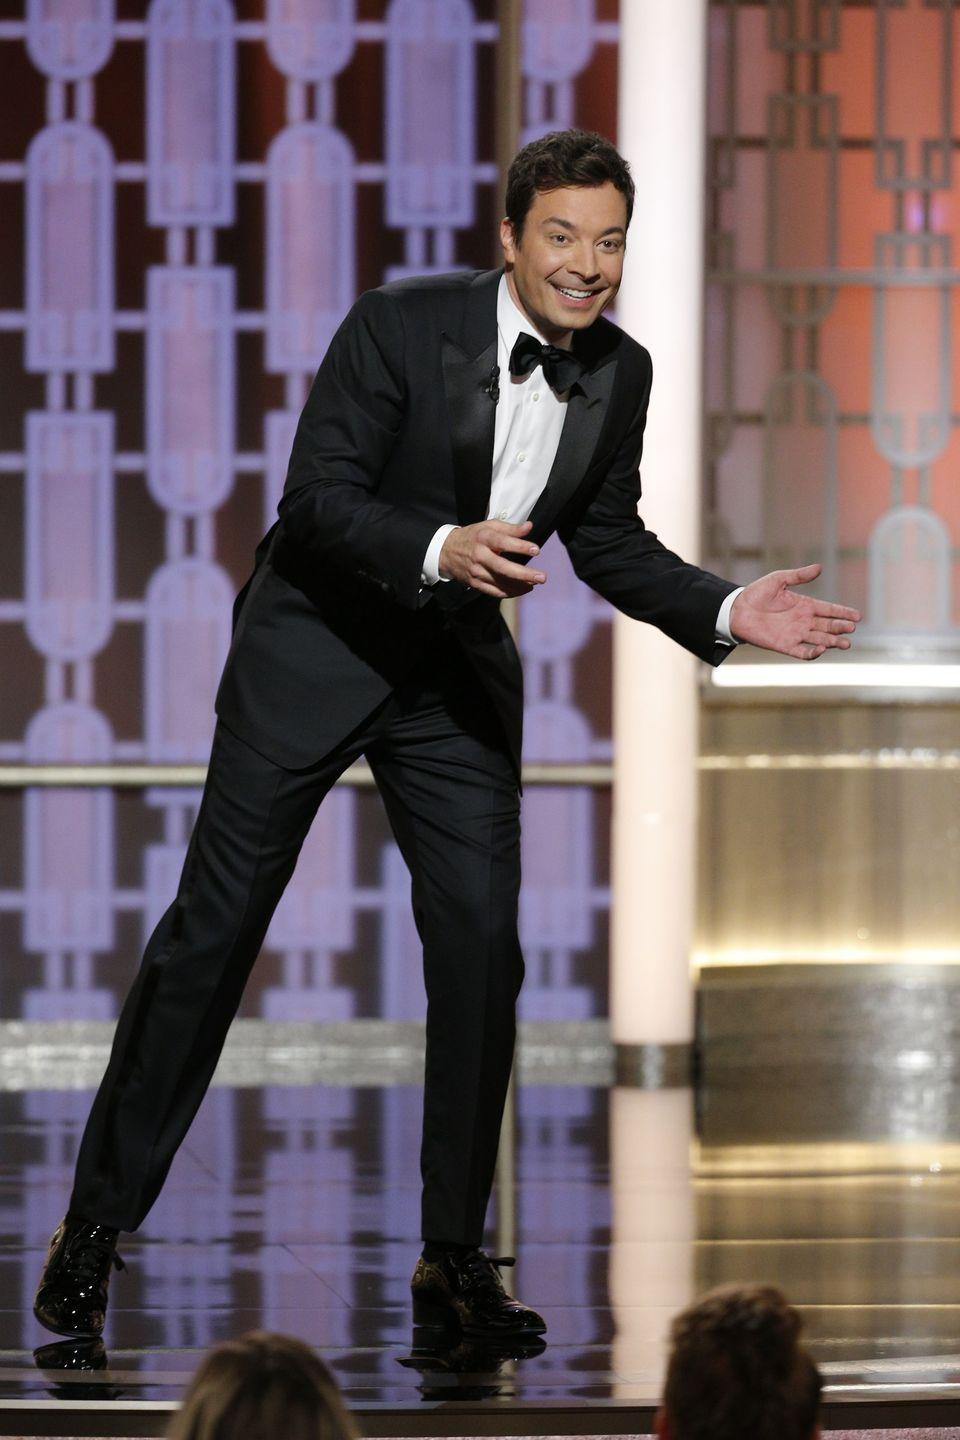 """<p>Not even 30 seconds in, technical difficulties began to ravage the Golden Globes in 2017. To Jimmy's credit, <a href=""""https://twitter.com/VanityFair/status/818271663854714880?ref_src=twsrc%5Etfw%7Ctwcamp%5Etweetembed%7Ctwterm%5E818271663854714880&ref_url=https%3A%2F%2Fwww.vanityfair.com%2Fhollywood%2F2017%2F01%2Fgolden-globes-2017-jimmy-fallon-monologue-teleprompter"""" rel=""""nofollow noopener"""" target=""""_blank"""" data-ylk=""""slk:the TV host did the best he could"""" class=""""link rapid-noclick-resp"""">the TV host did the best he could</a> trying to entertain the audience while going off script. But the technological fail led to <em>The</em> <em>Tonight Show</em> star fumbling for the first few minutes. Luckily, the monitor problem eventually fixed itself, with Jimmy cleverly quipping at the end """"I'm happy I didn't trip already.""""</p>"""